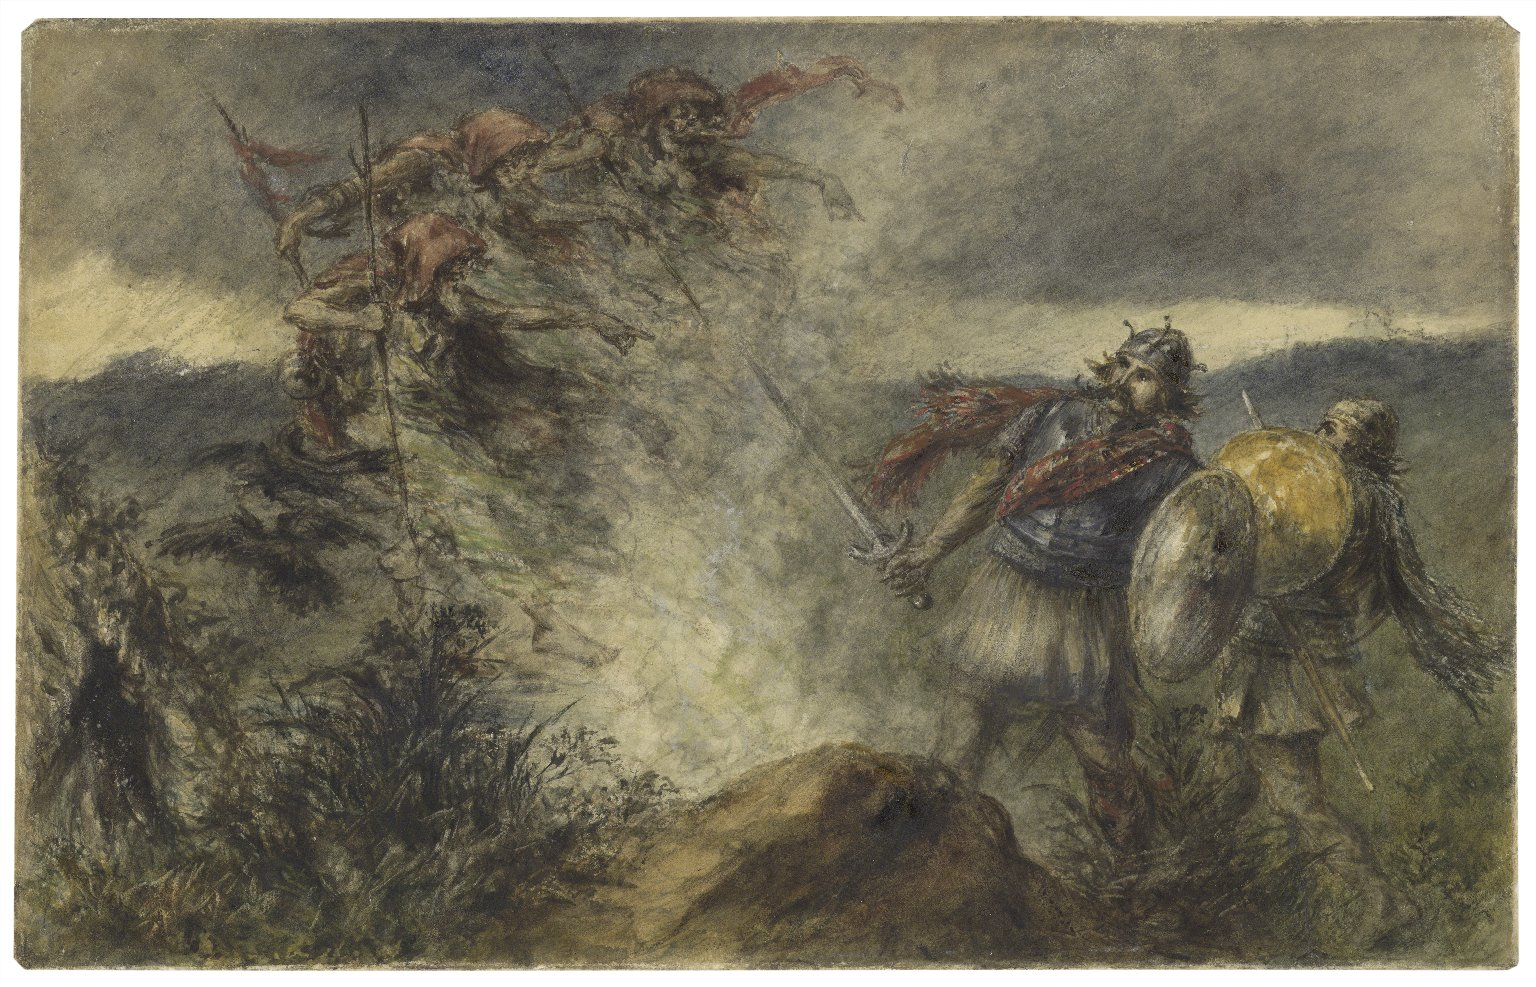 [Macbeth, I, 3, the three witches appearing on the heath] [graphic] / F. Gilbert.